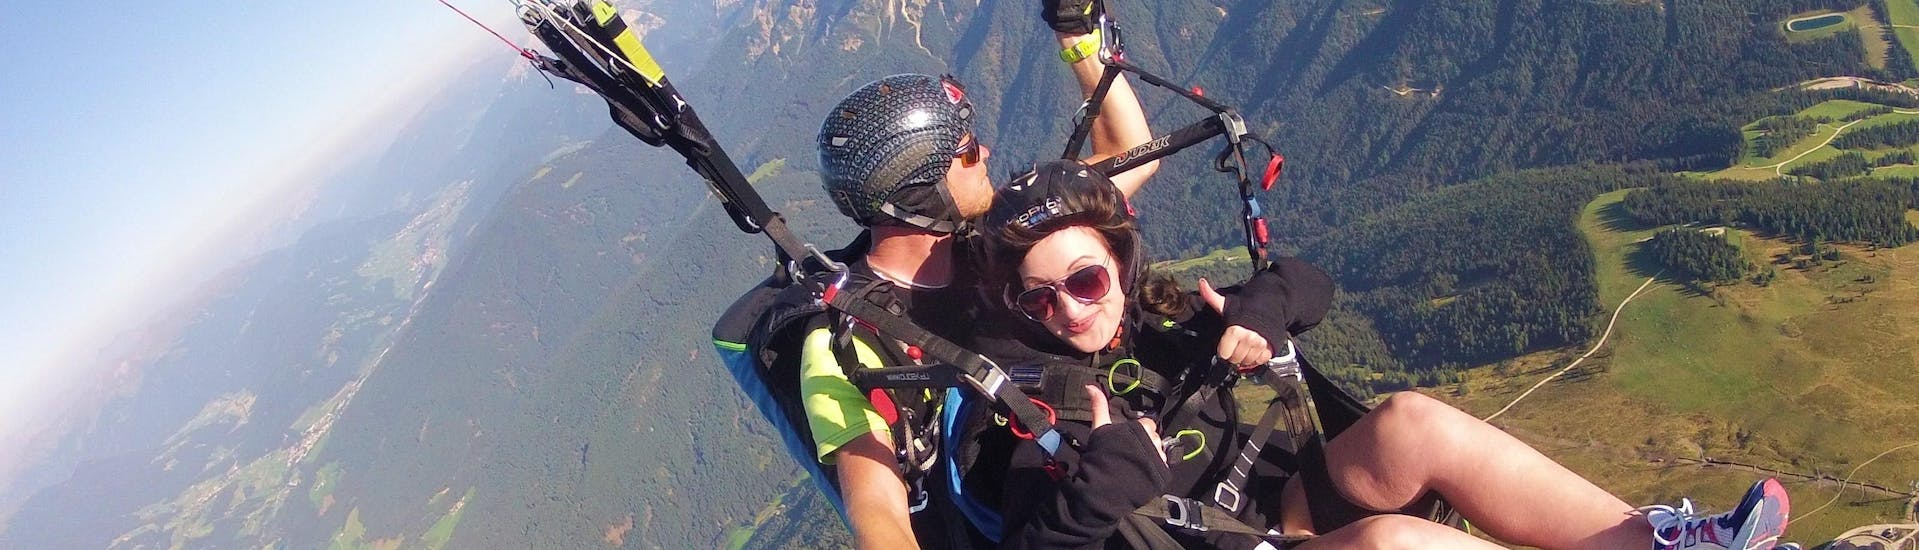 During the Tandem Paragliding in Falzes near Brunico with Tandemflights Kronplatz, a young woman and her tandem pilot are enjoying the spectacular view.